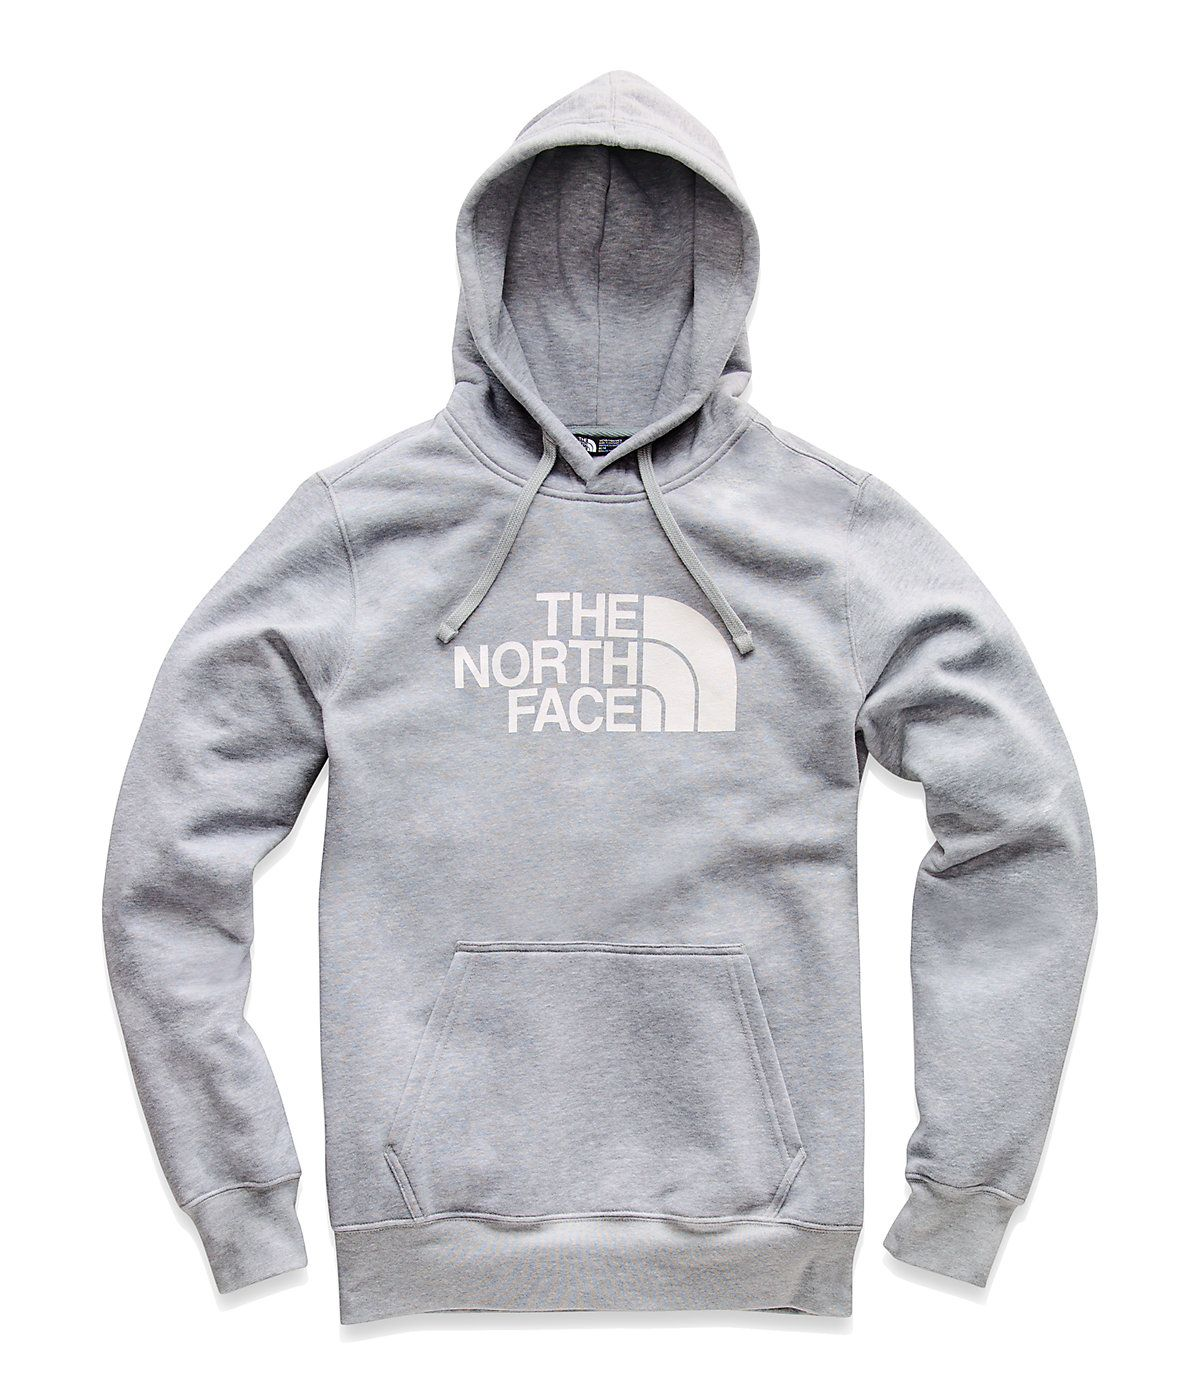 The North Face Men's Half Dome Pullover Hoodie | Free